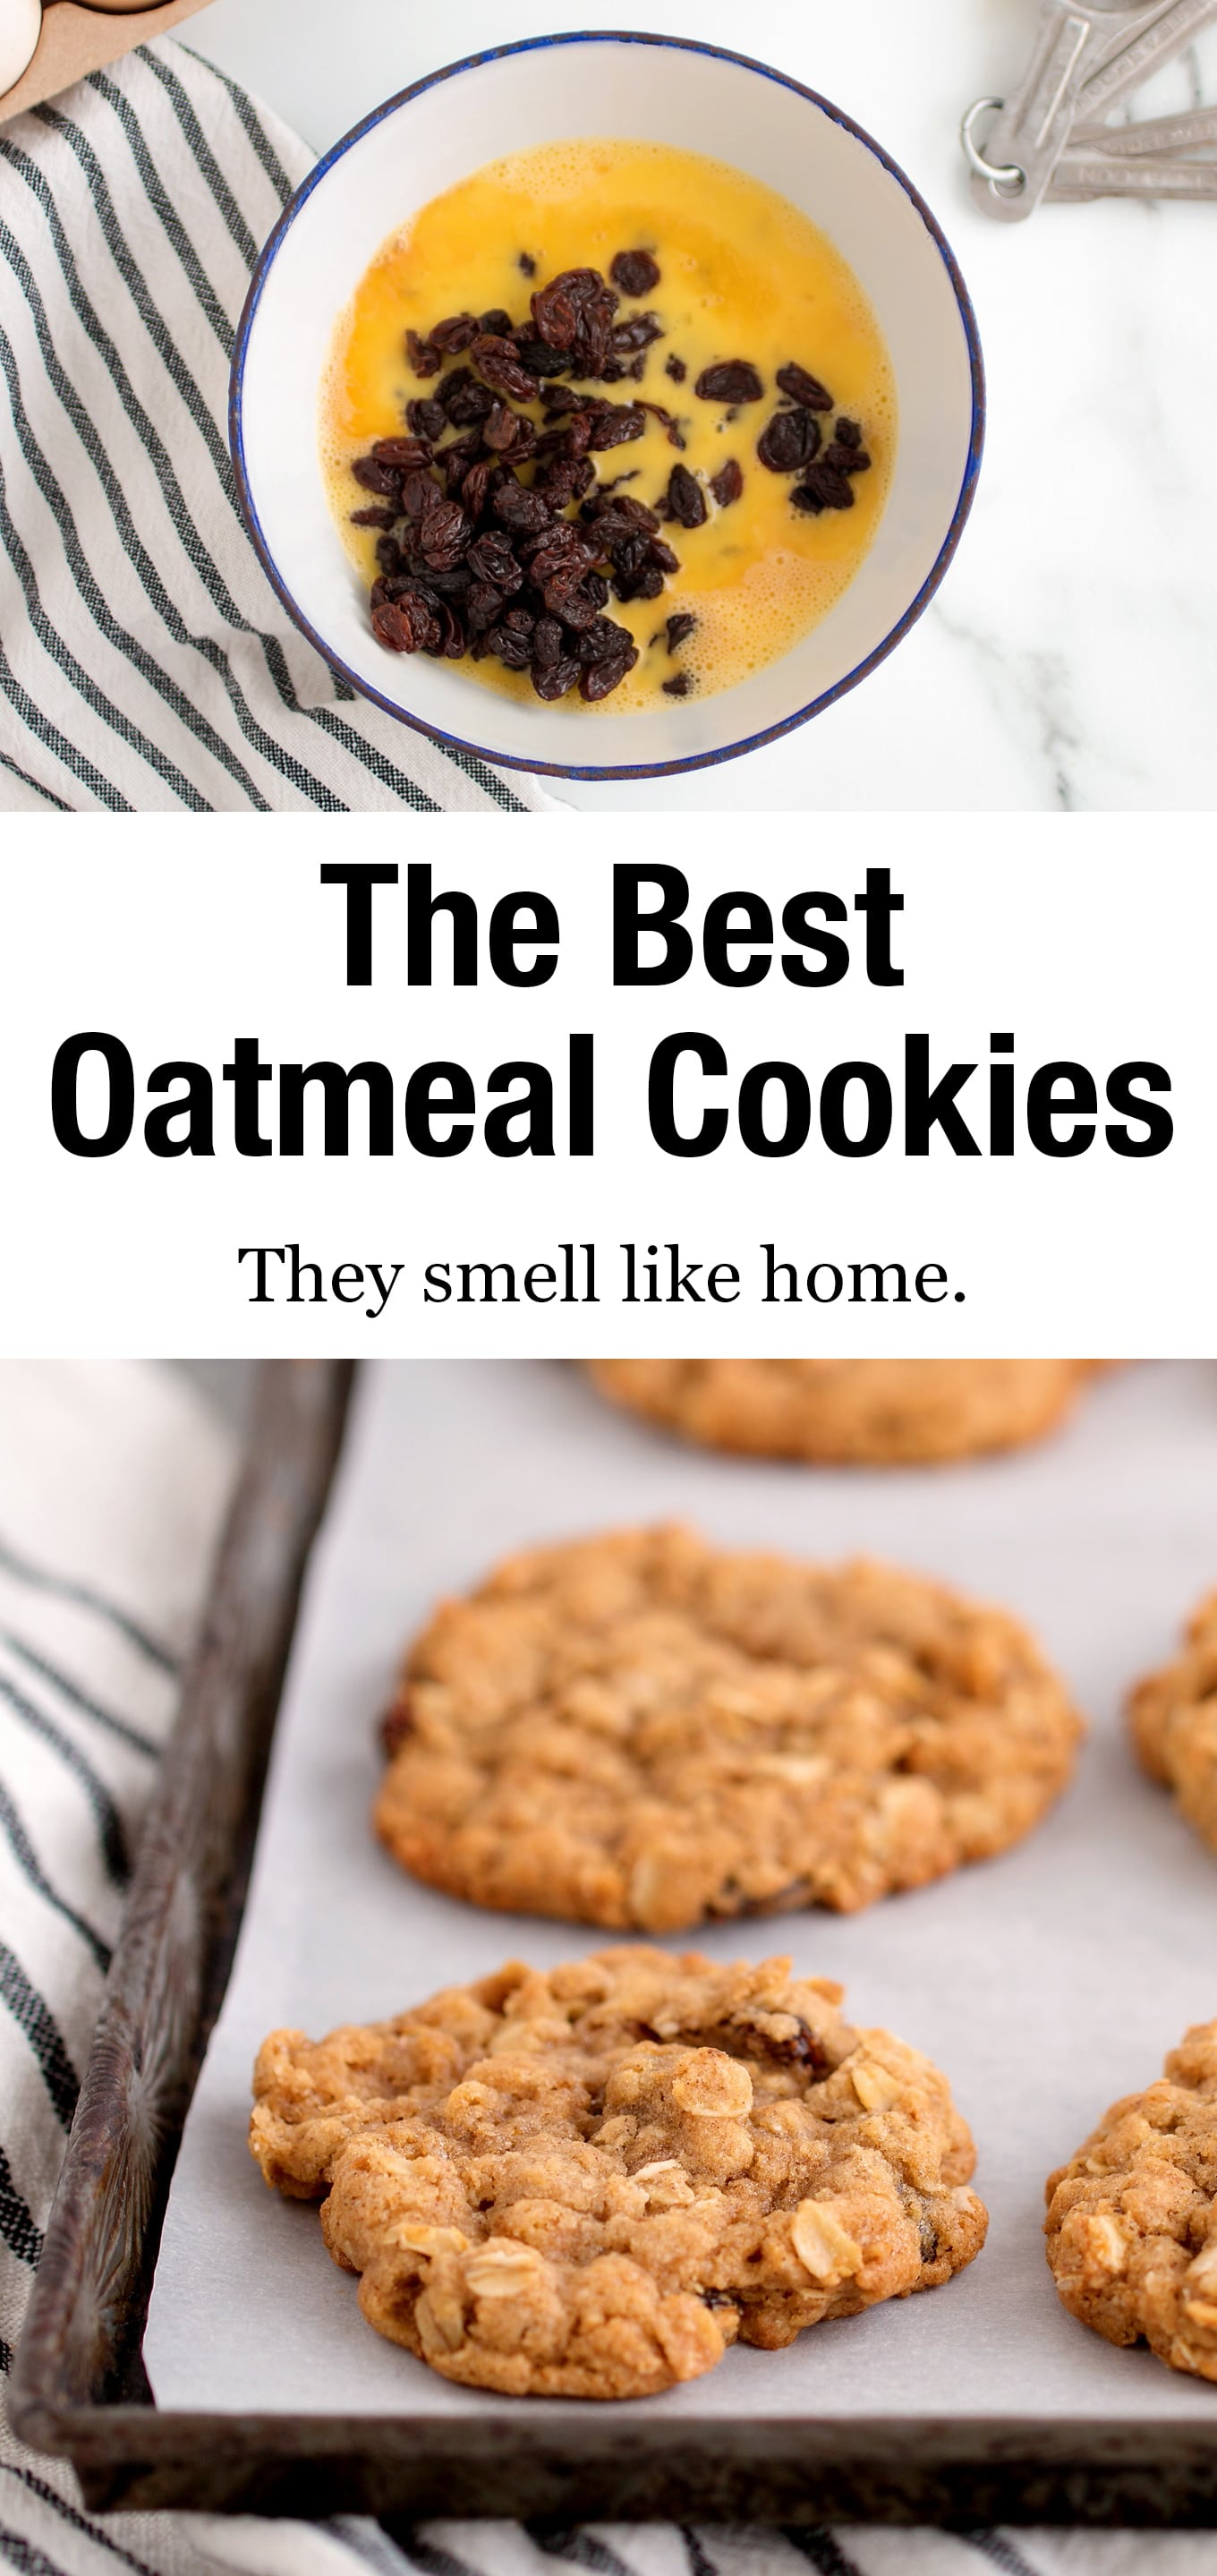 Chewy, easy, and soft! This is the only oatmeal cookie recipe you will ever need! Trust me, it's the best ever! #oatmealcookies #recipe #oatmealraisincookies #best via @firefliesandmudpies